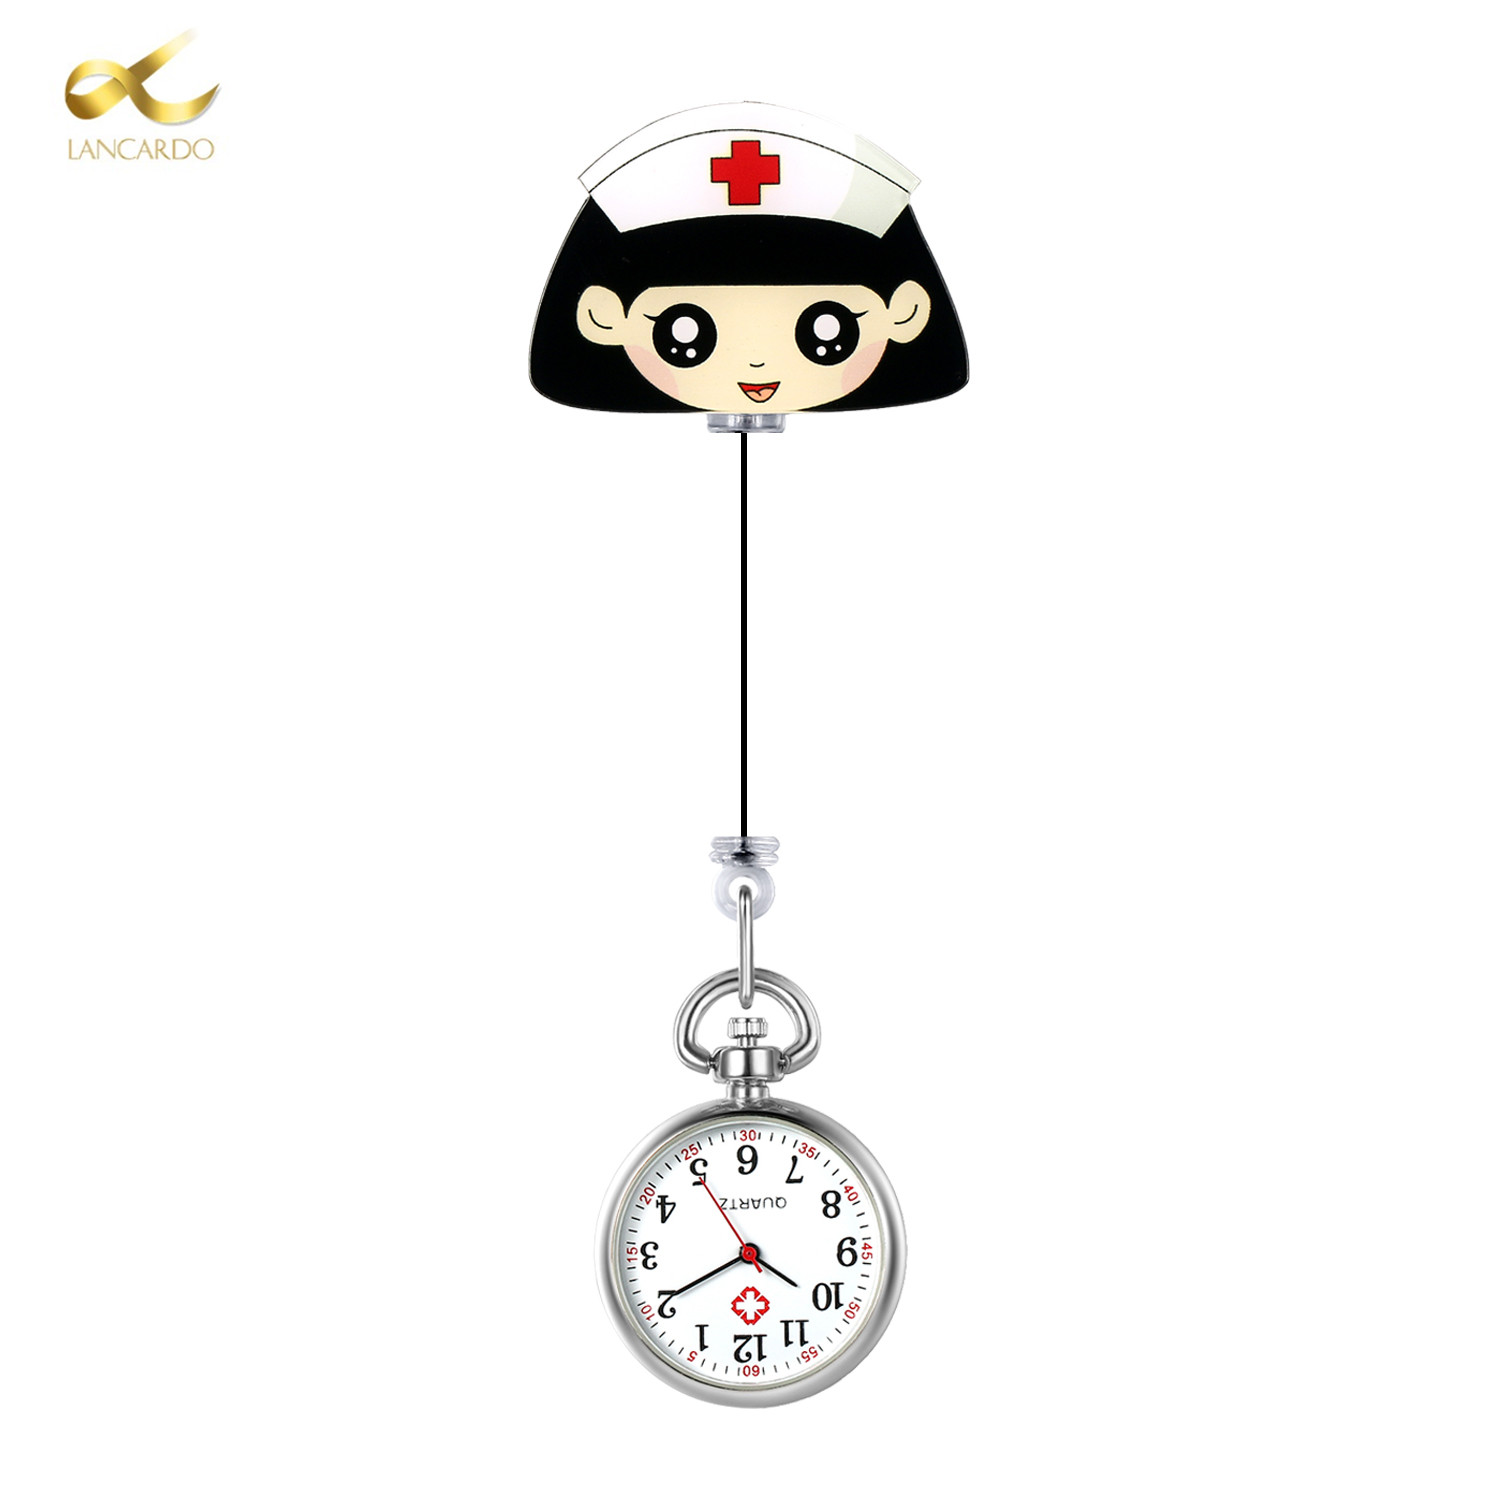 LANCARDO Retro Mini Lovely Nurse Hanging Watch Digital Quartz Clip Type FOB Nurse Doctor Watch Hanging Female Lady's